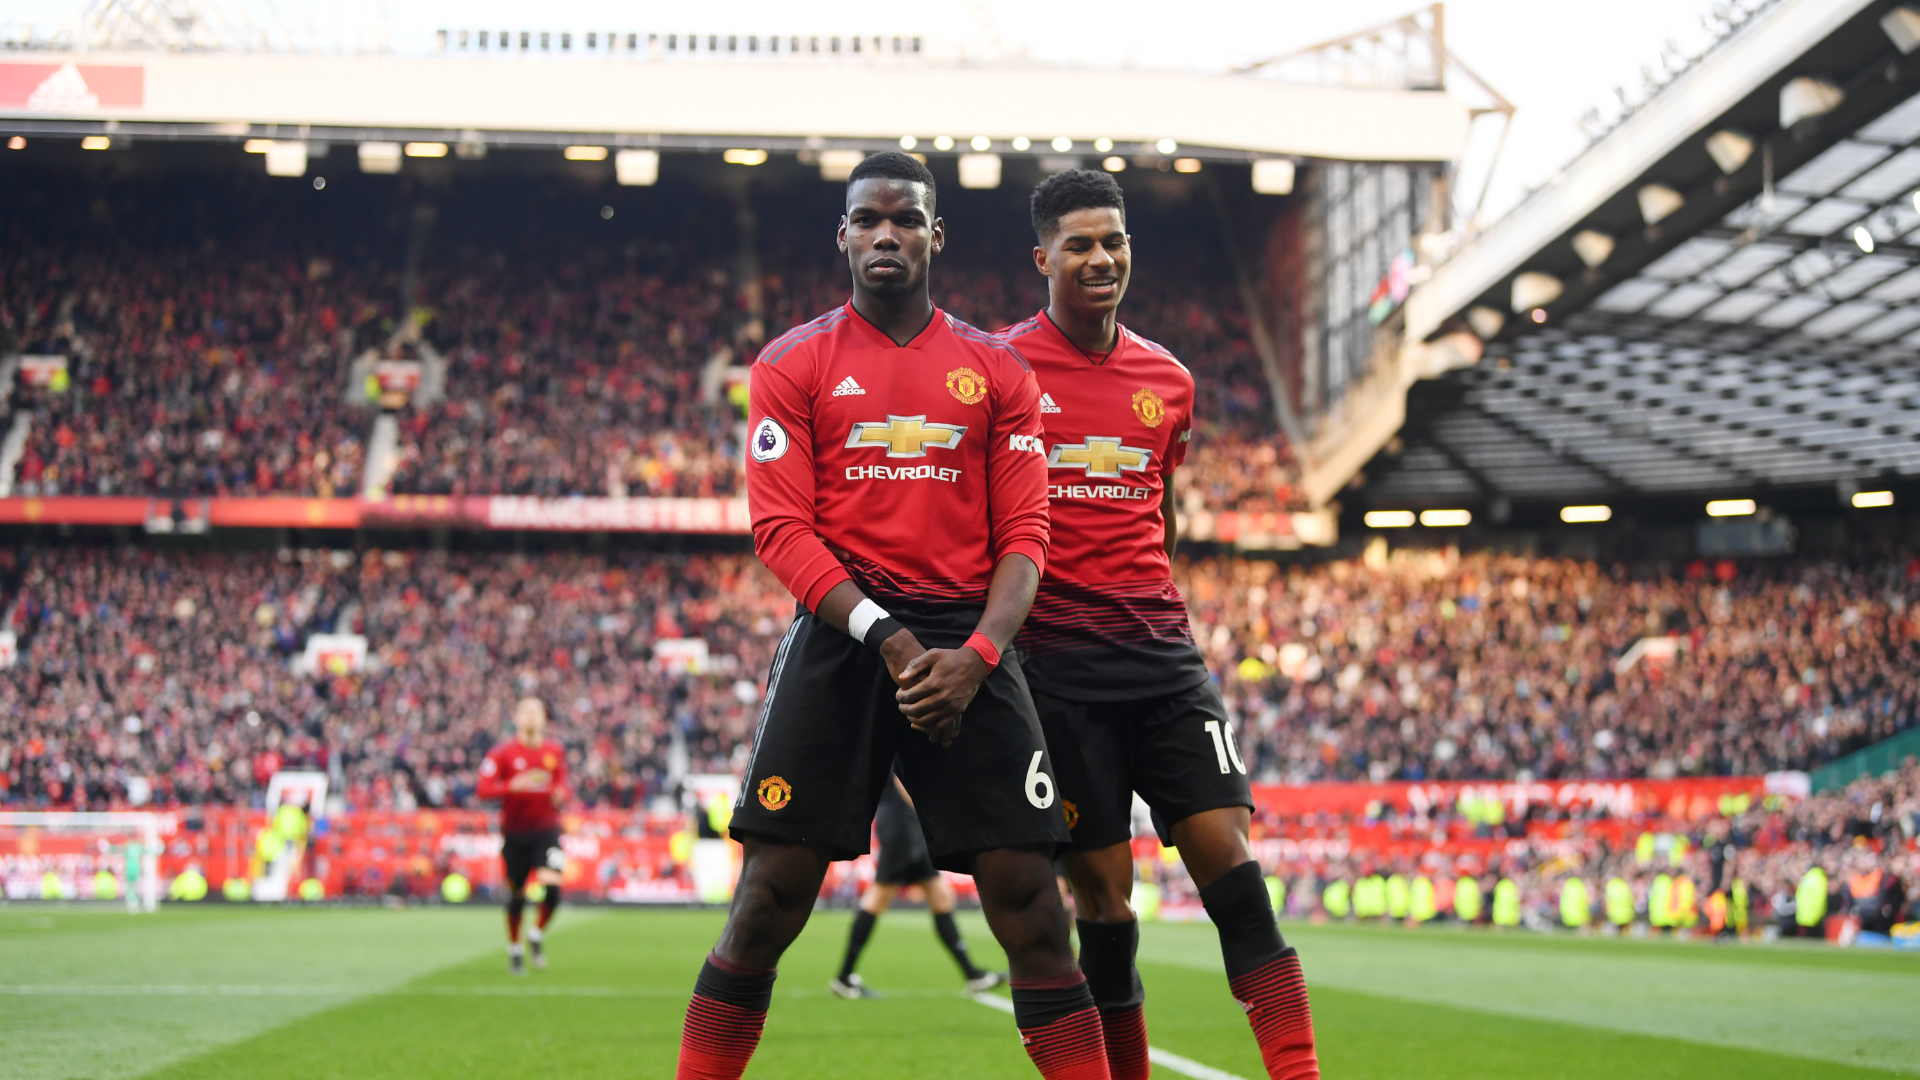 635c6394481 A-League news  Manchester United s Perth friendlies to be shown on Channel  7 in Australia